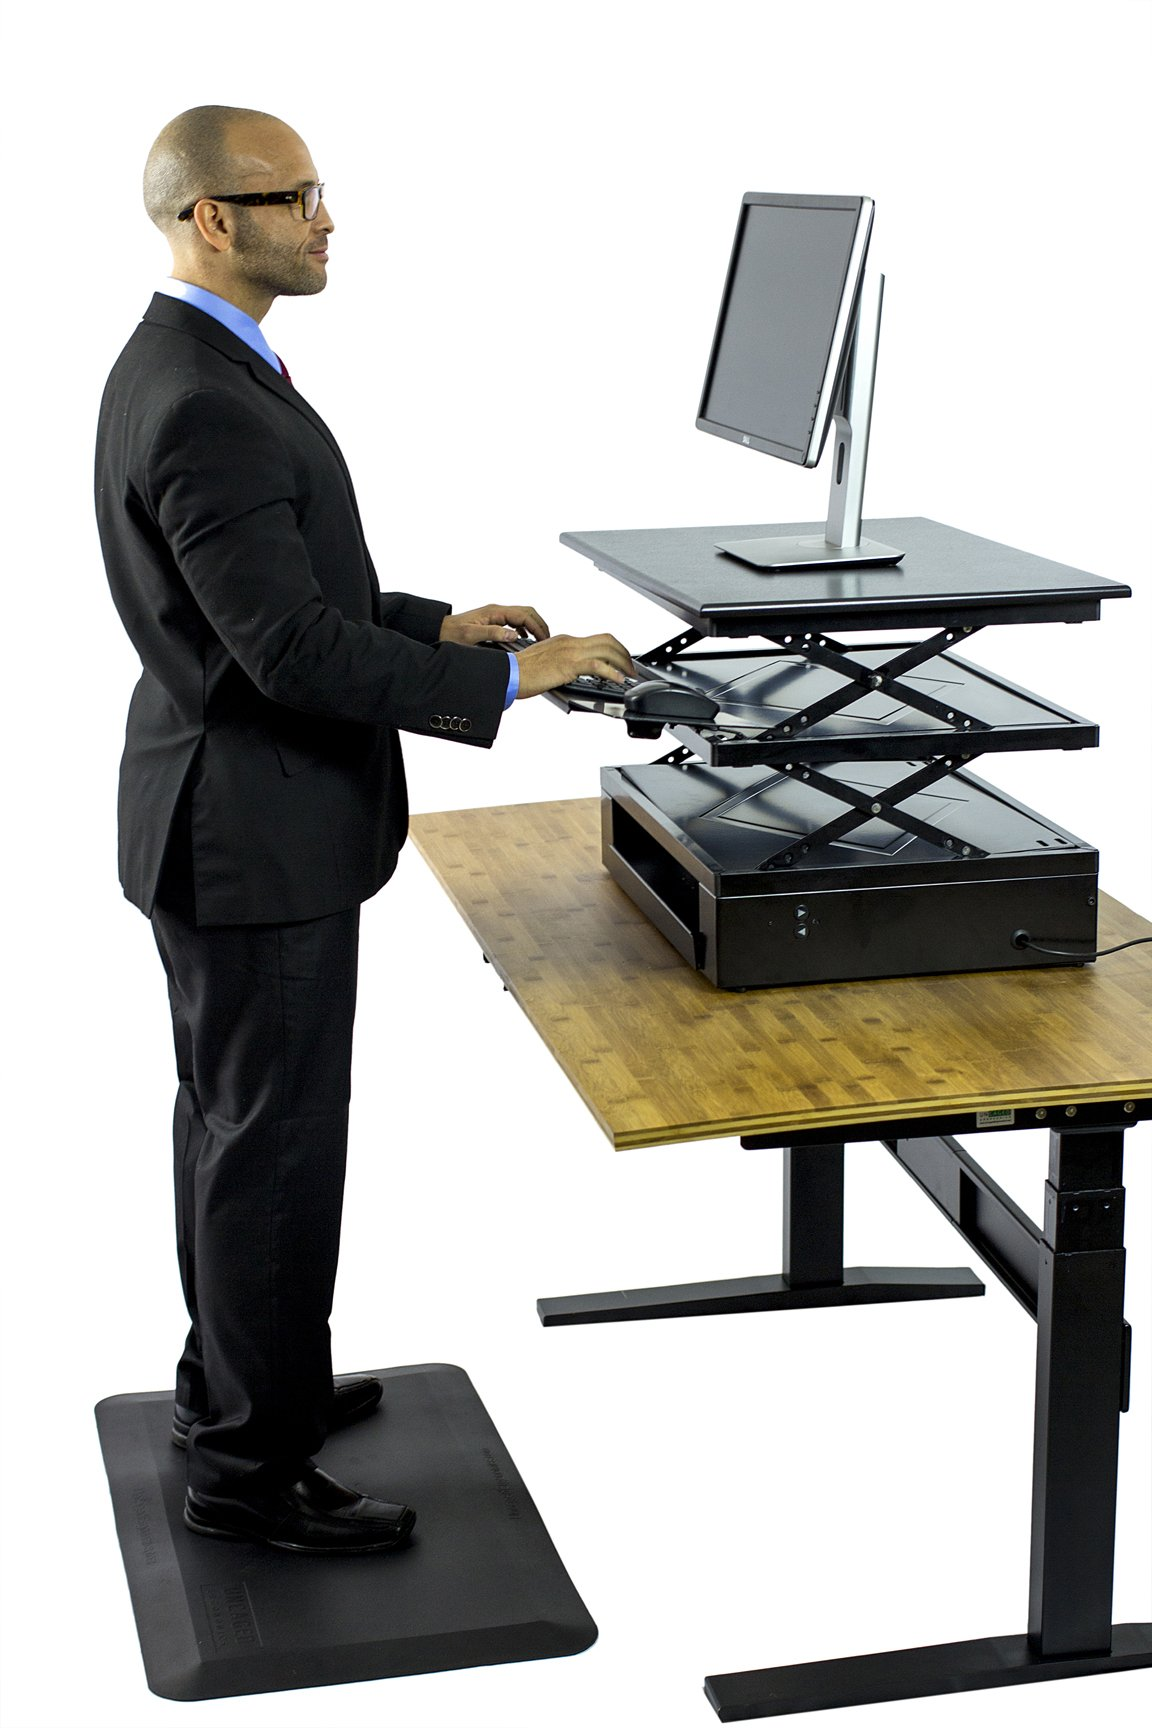 Uncaged Ergonomics Electric Change Desk, Height Adjustable Standing Desk Converter, Ergonomic Stand Up Desk Conversion Kit (CDE-b) by Uncaged Ergonomics (Image #4)